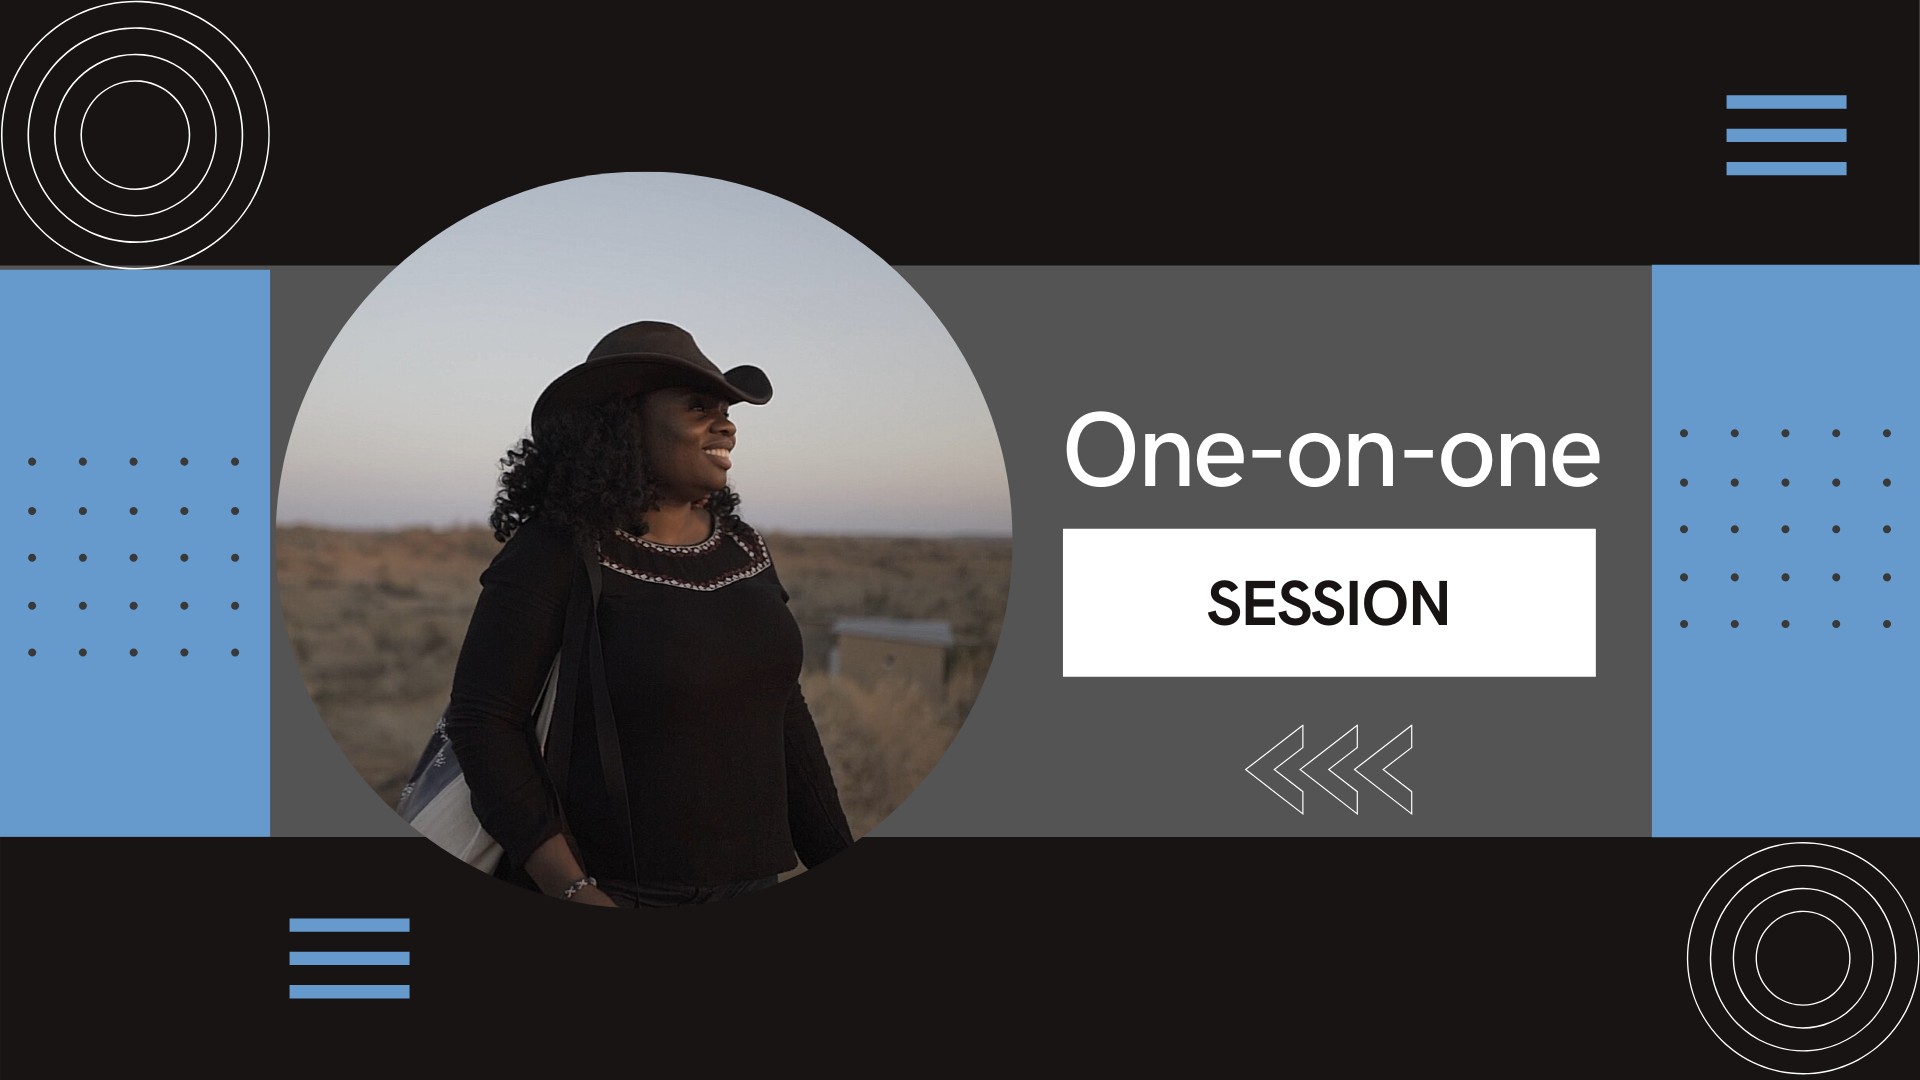 Book a one-on-one session with Lola Akinmade Åkerström